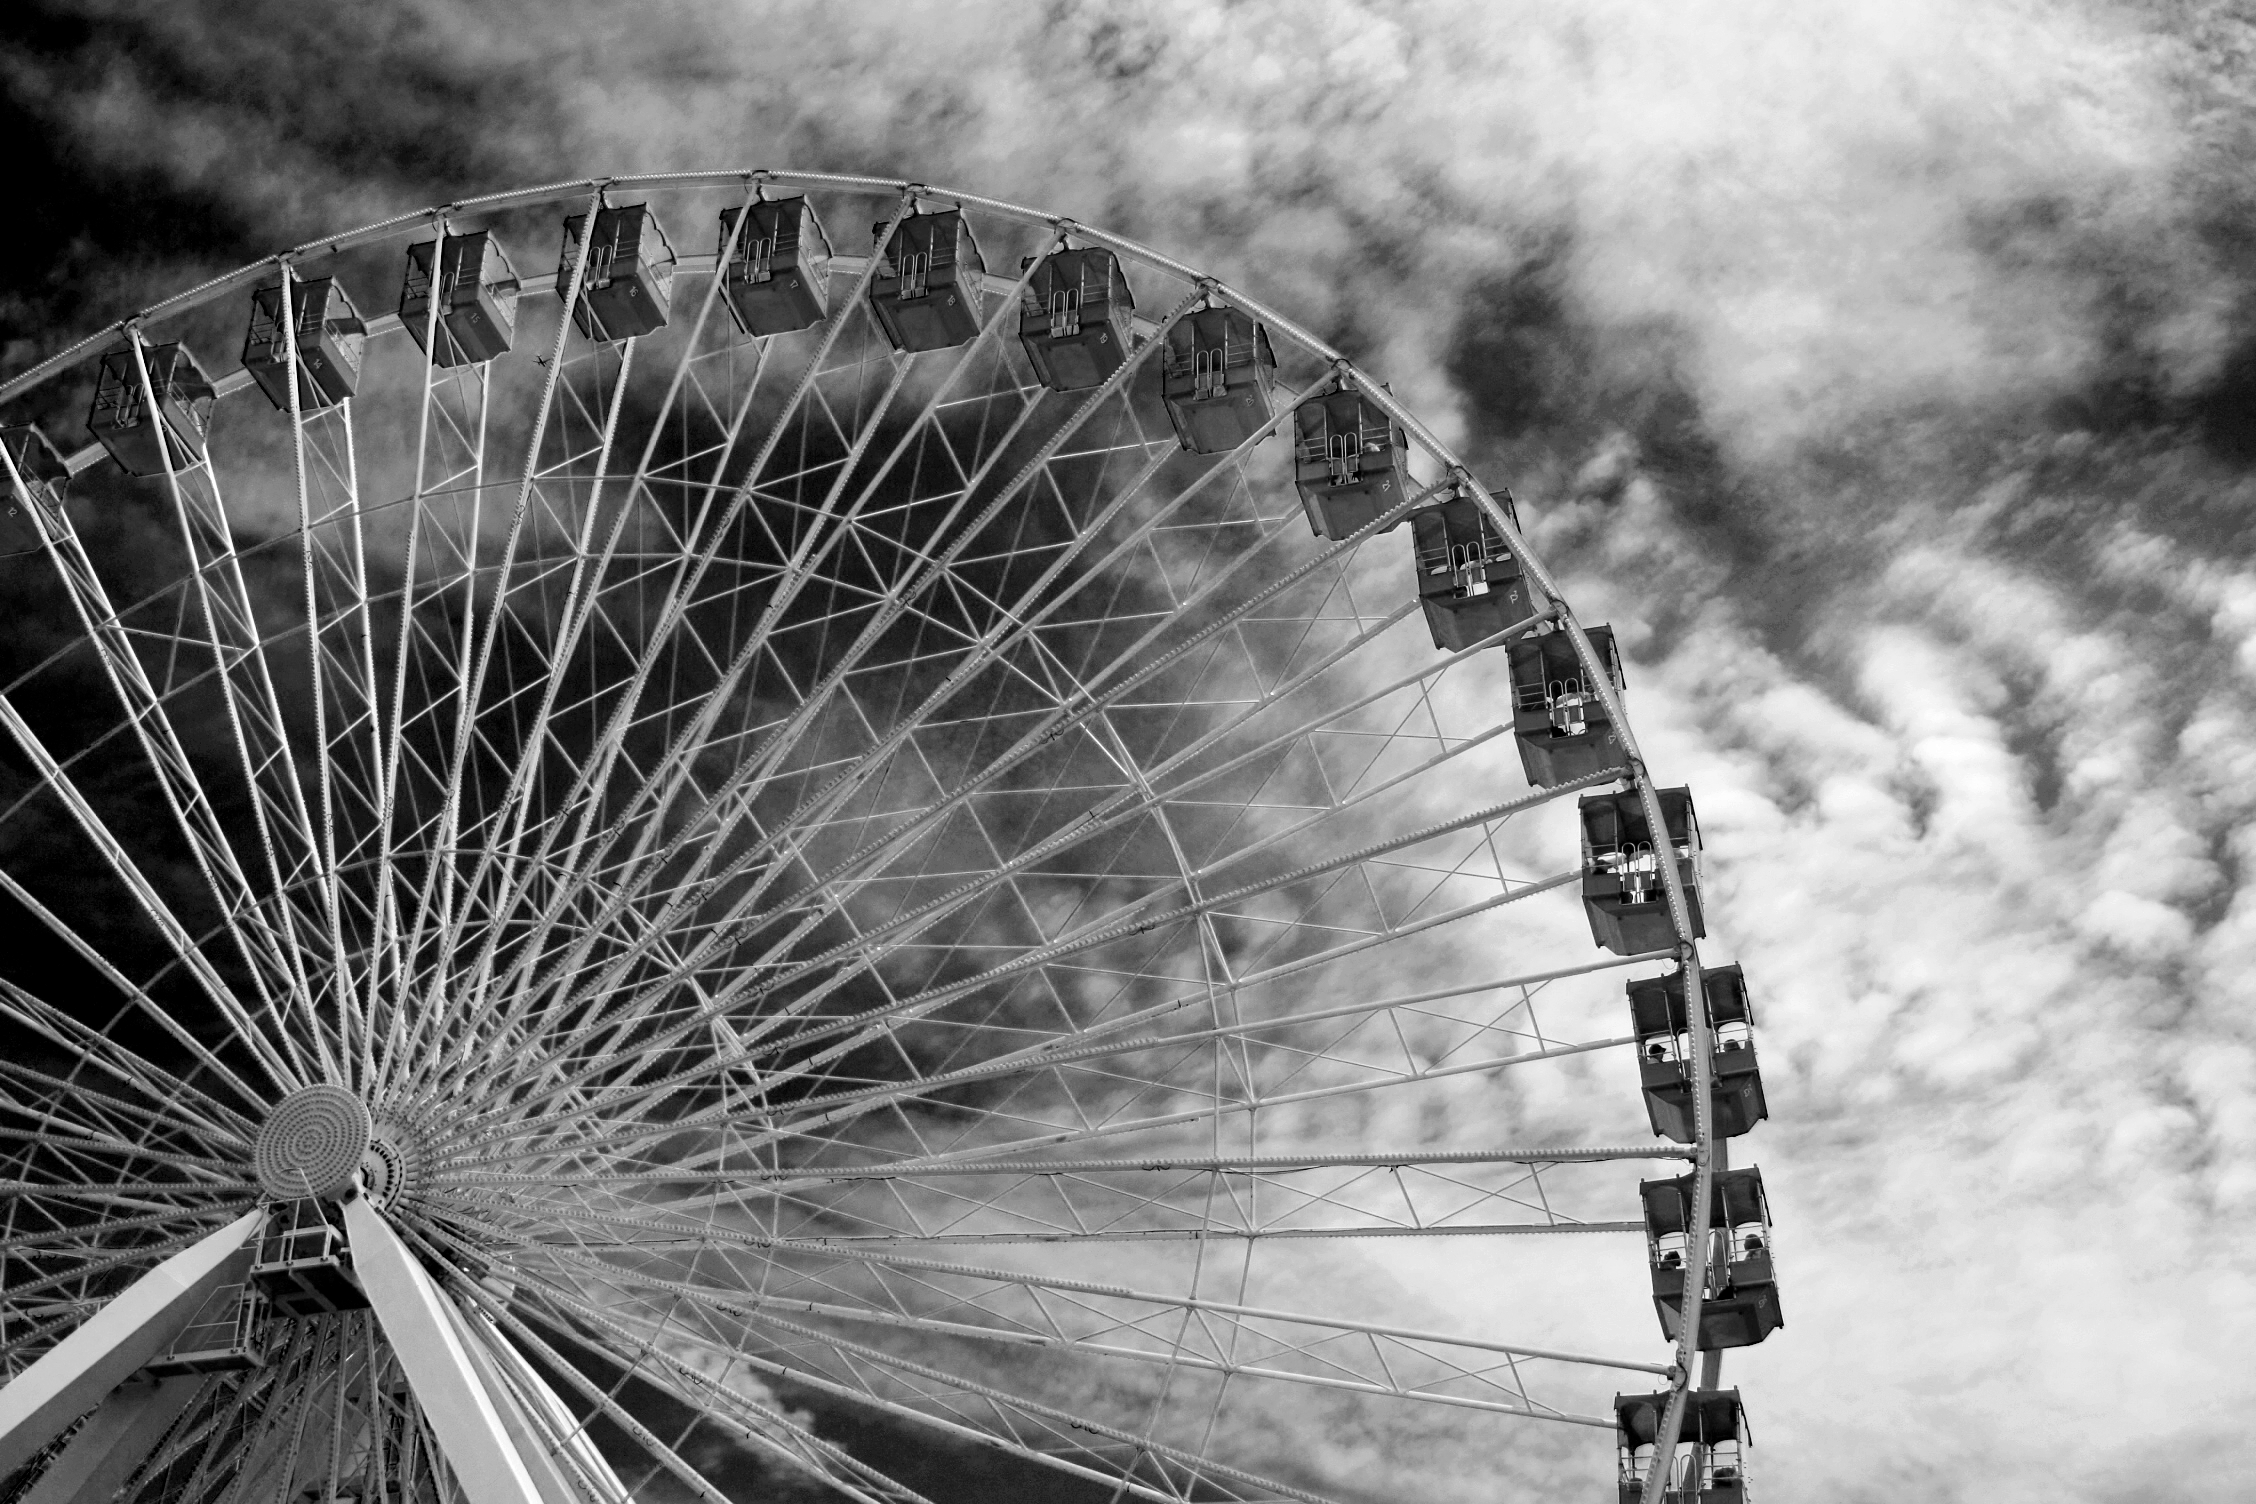 Ferris Wheel Photography Black And White Black And White Ferris Wheel